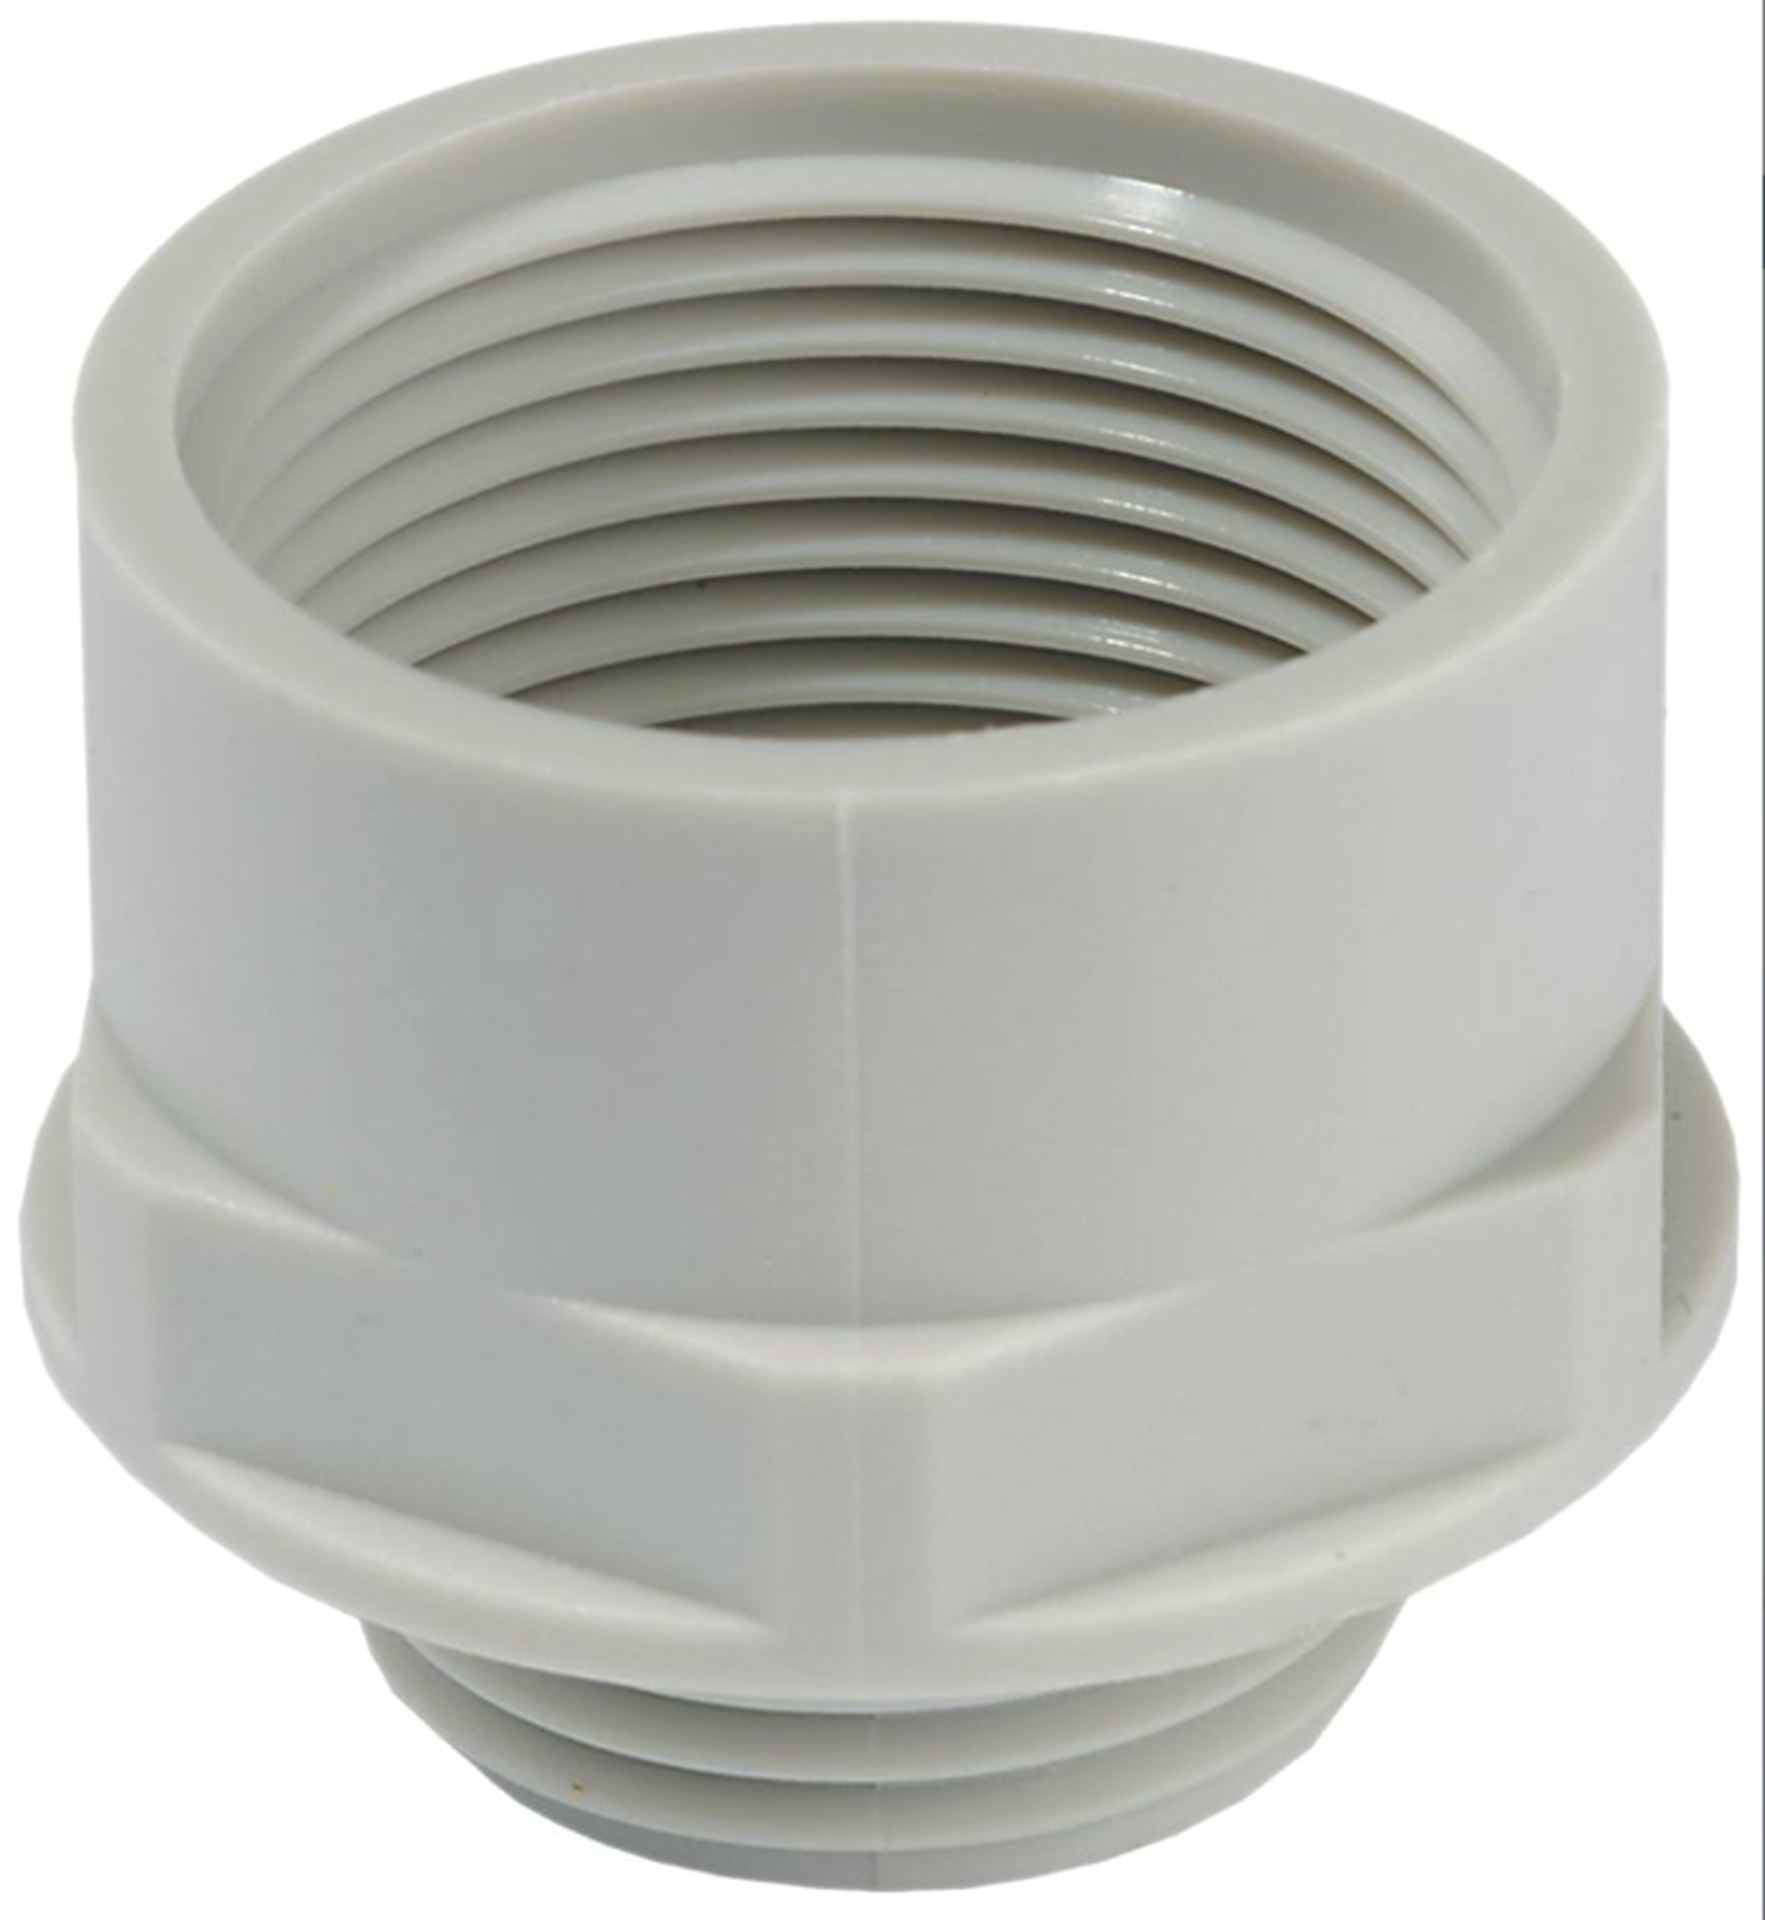 Wiska KEM 50/63 Enlargement Adapter LG 10063576